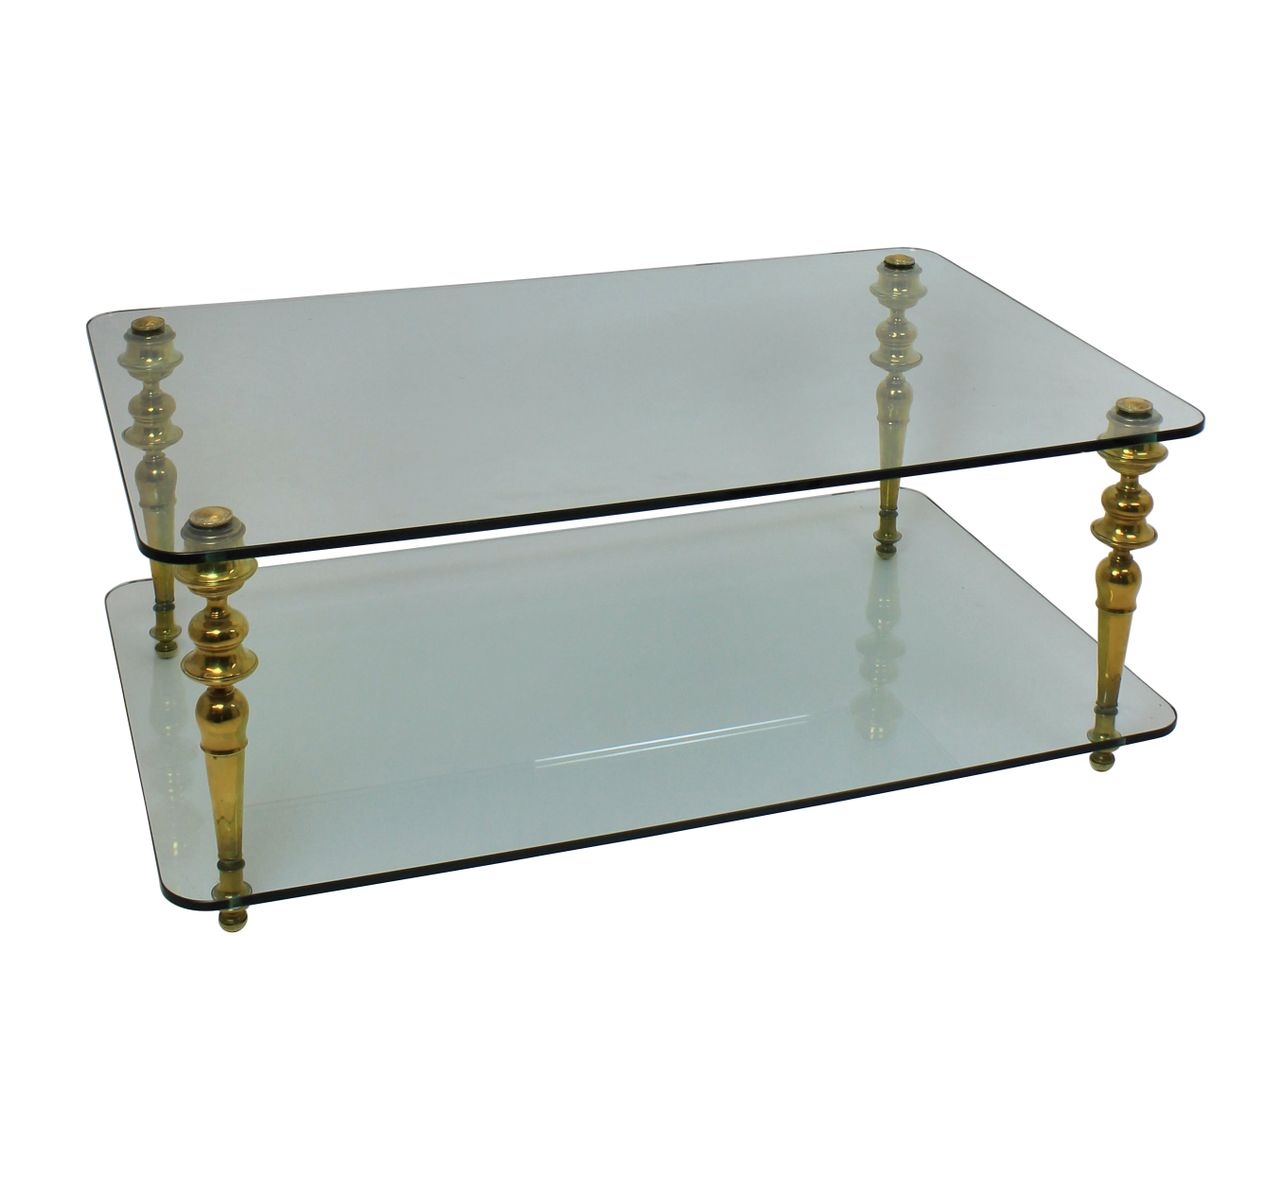 French coffee table from maison jansen for sale at pamono french coffee table from maison jansen 3 275100 price per piece geotapseo Choice Image